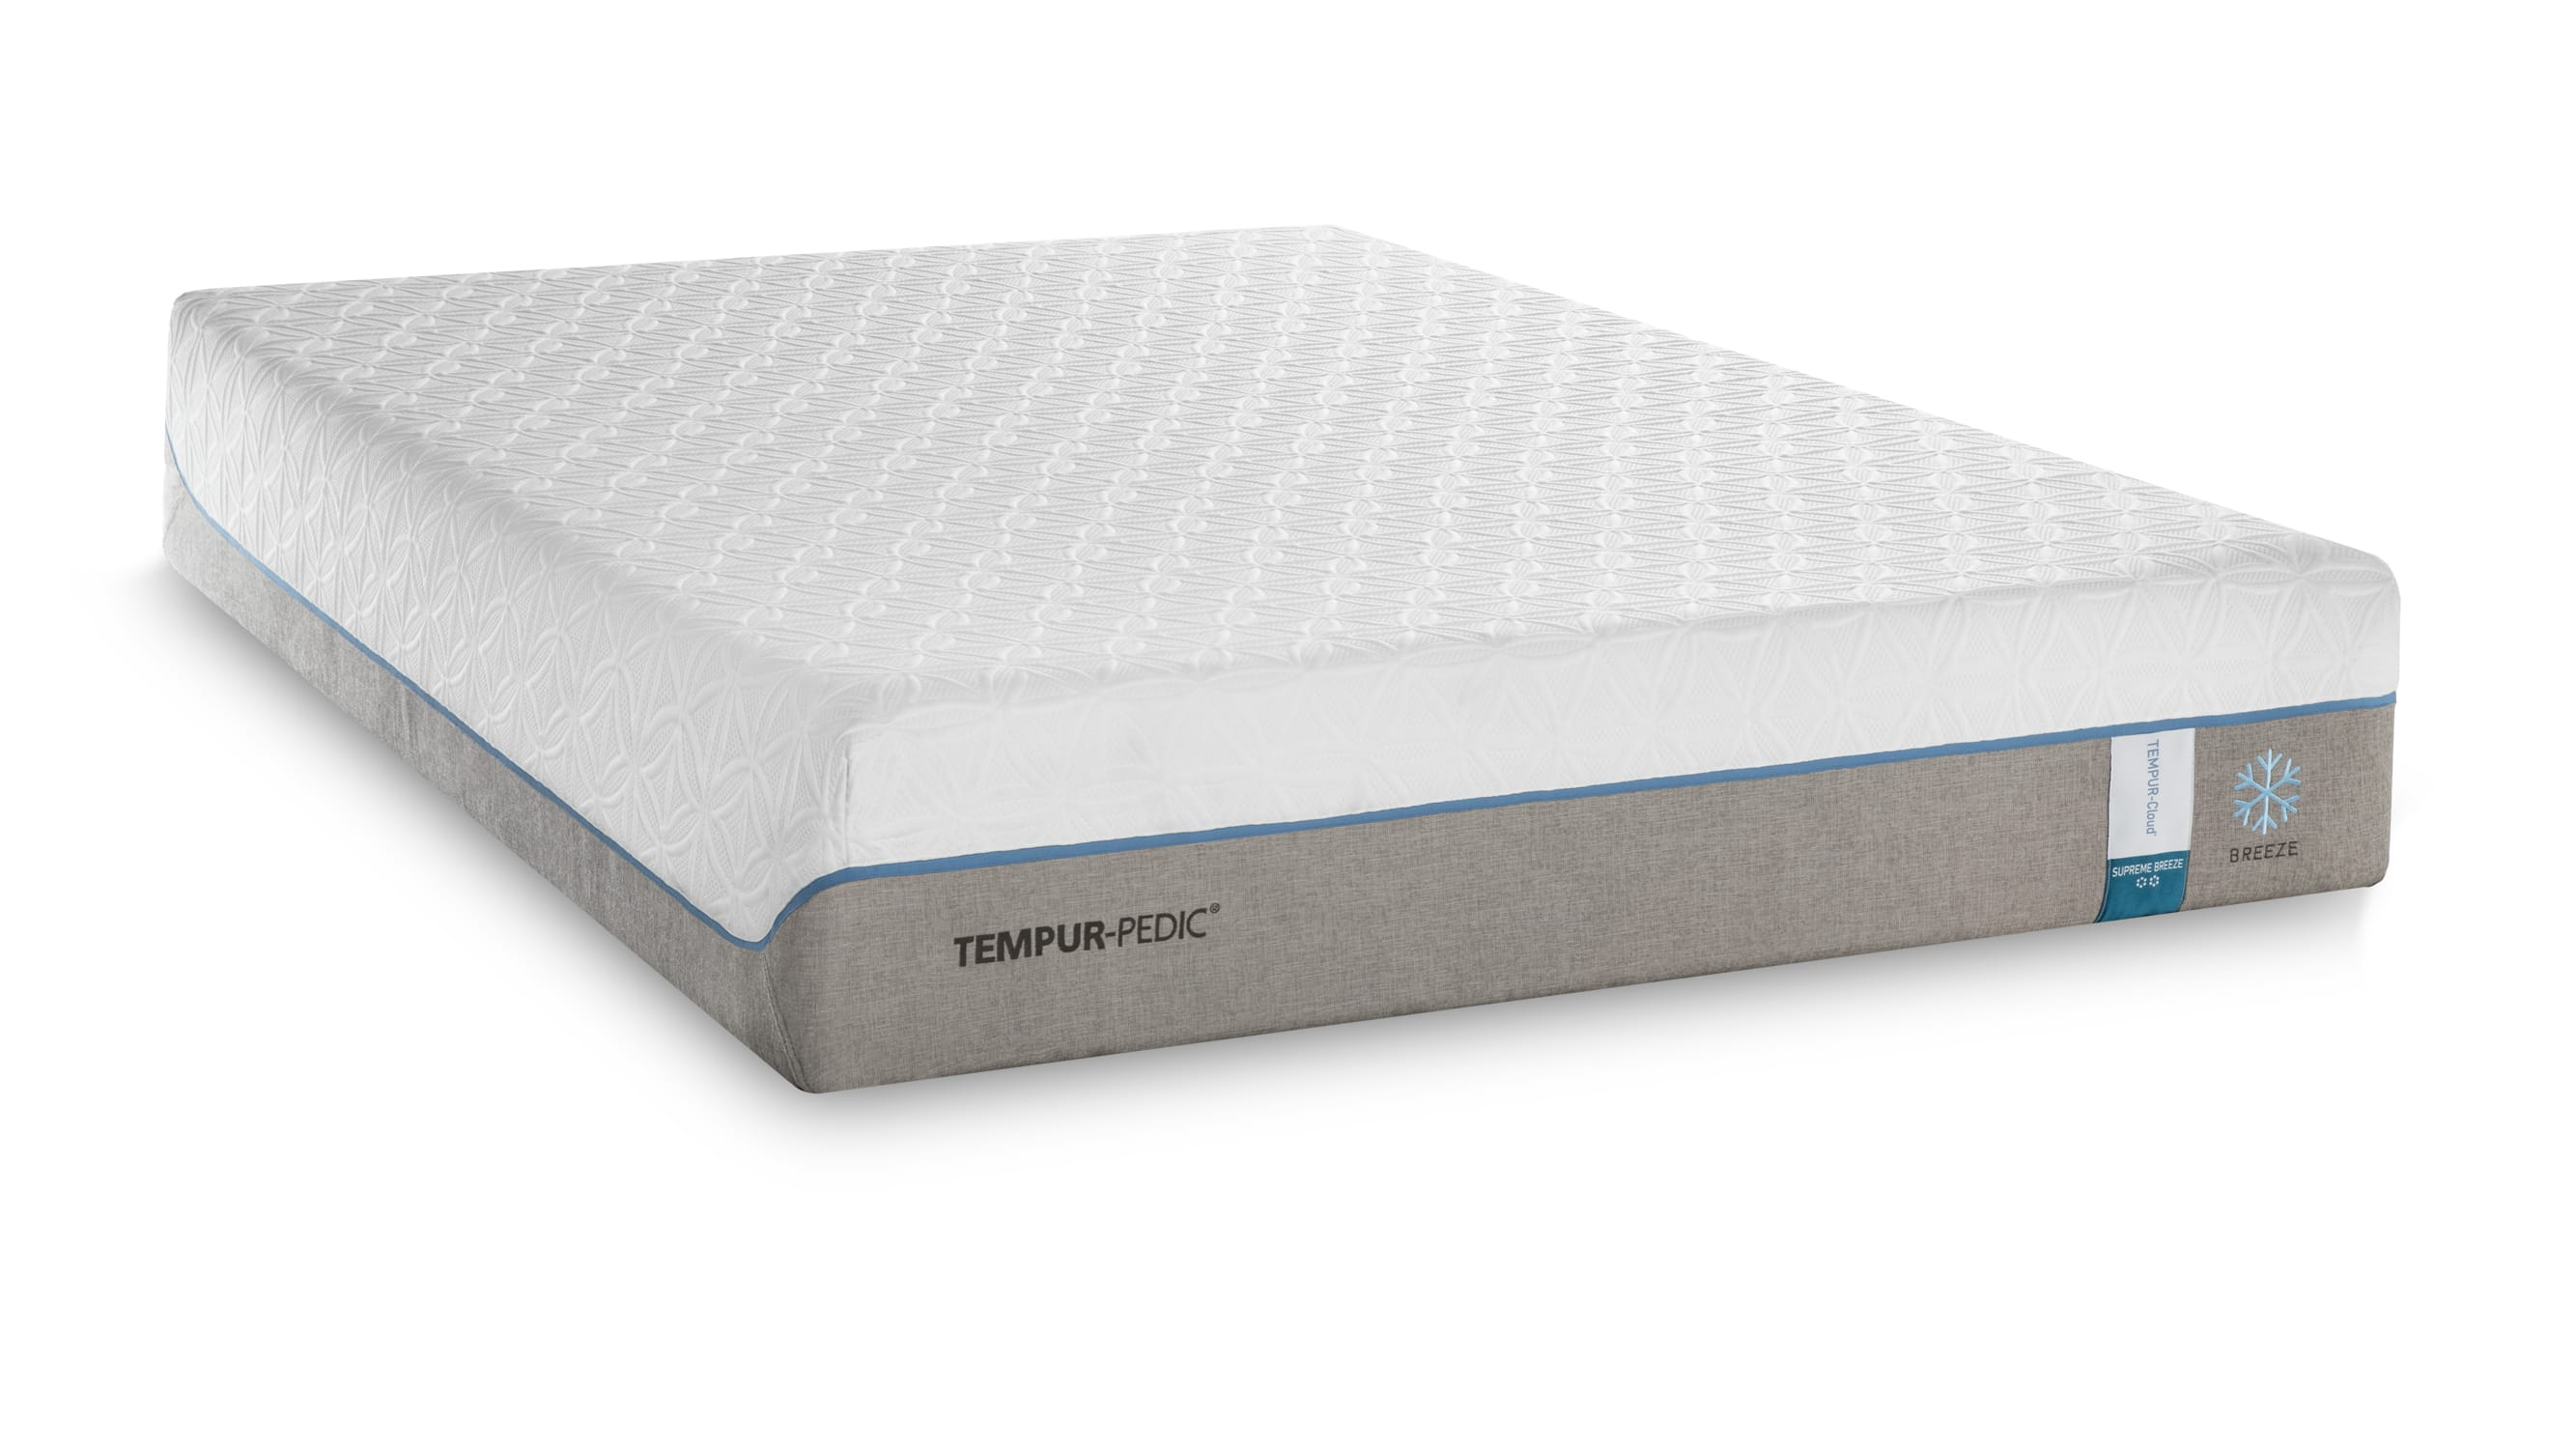 chiro barns product support mattress barn queen pillowtop discount